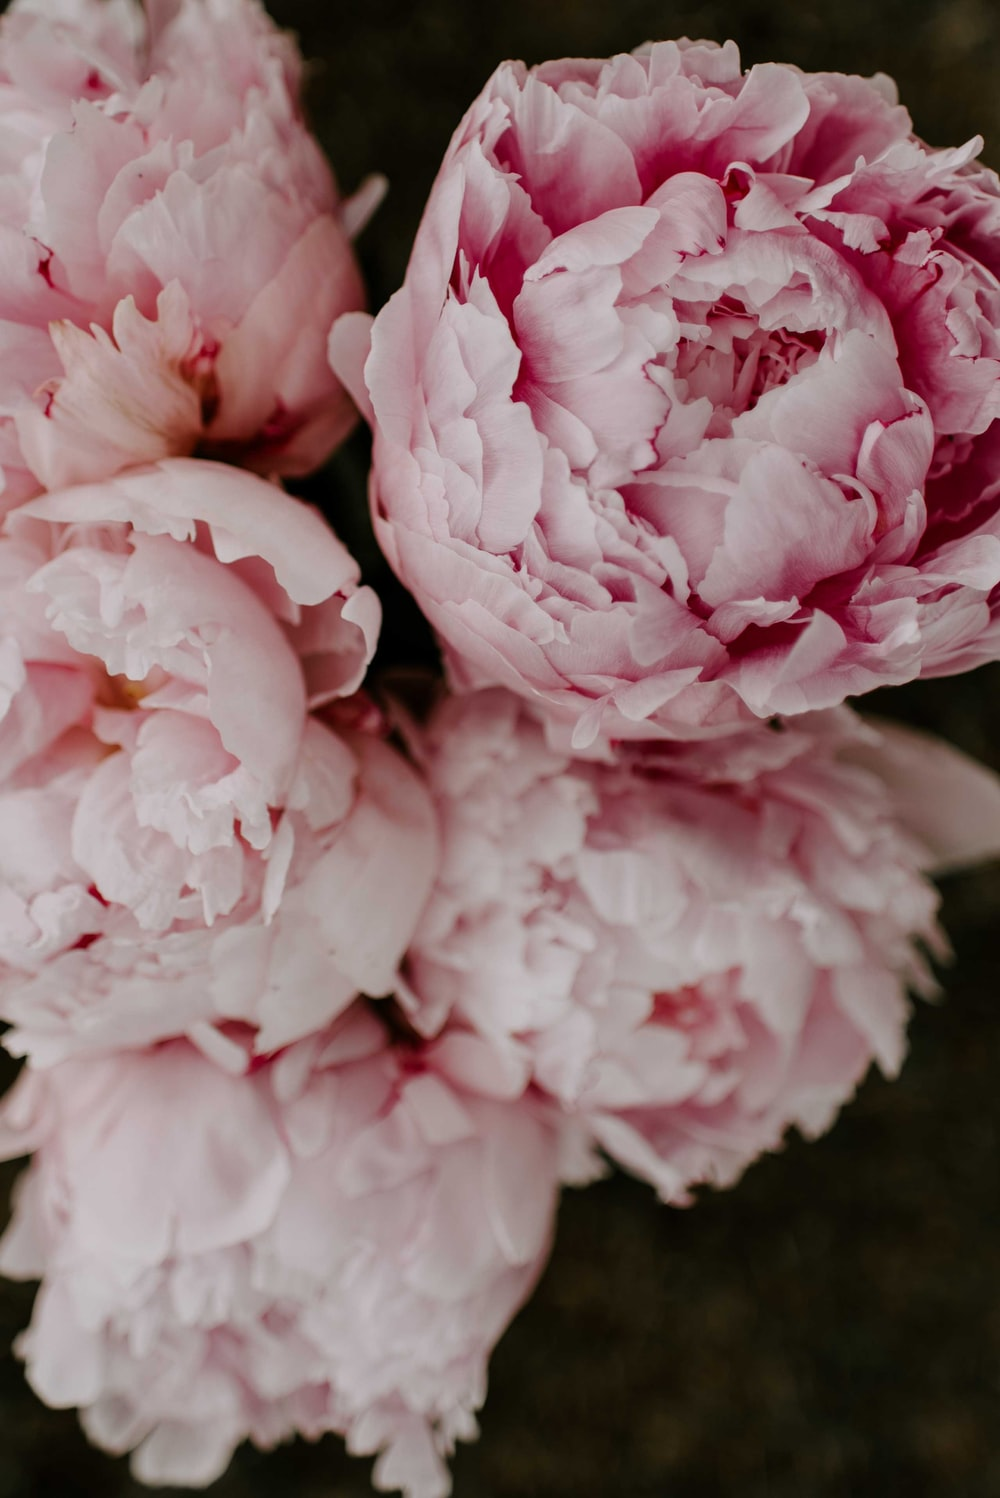 pink and white flowers in macro lens